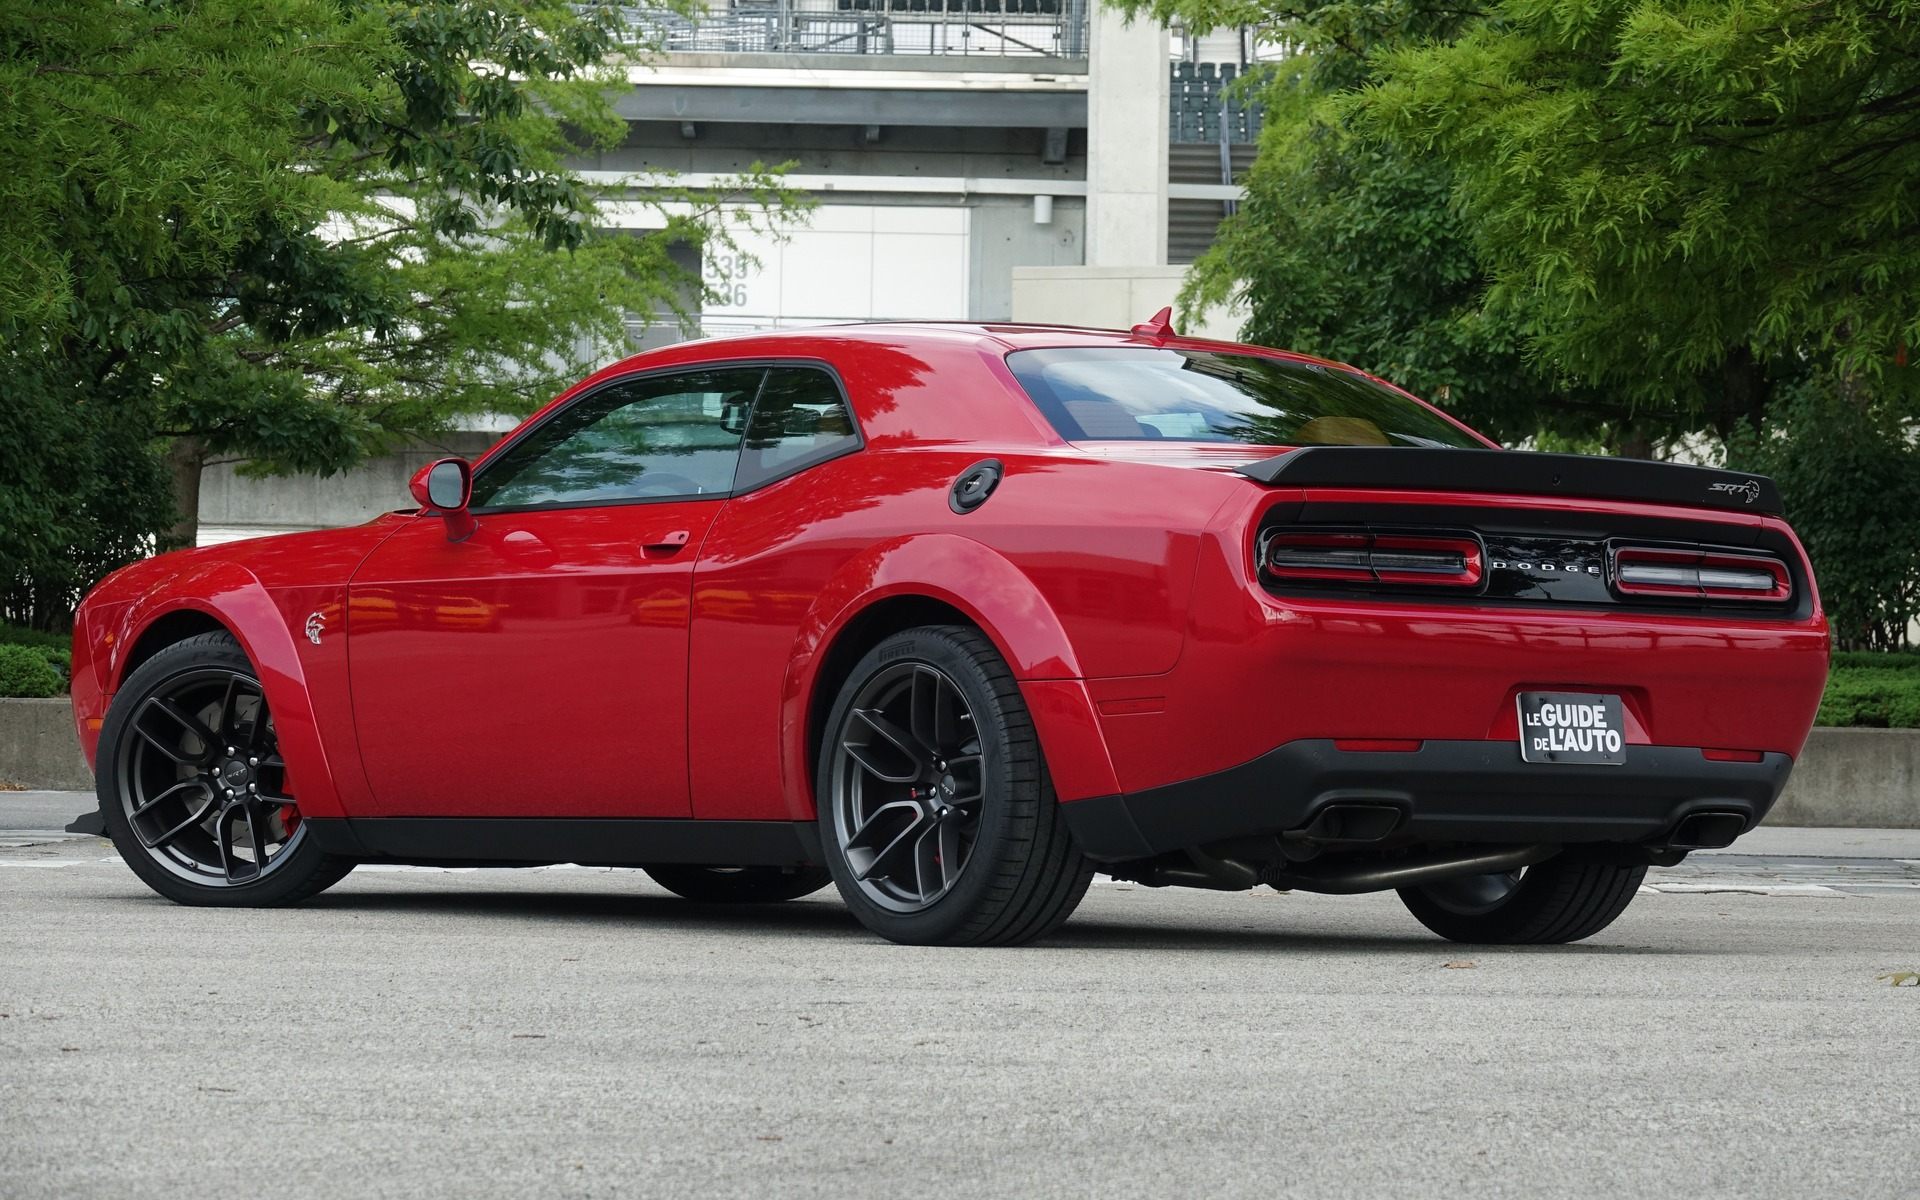 Srt Hellcat >> 2018 Dodge Challenger SRT Hellcat Widebody: the Next Logical Step - 21/21